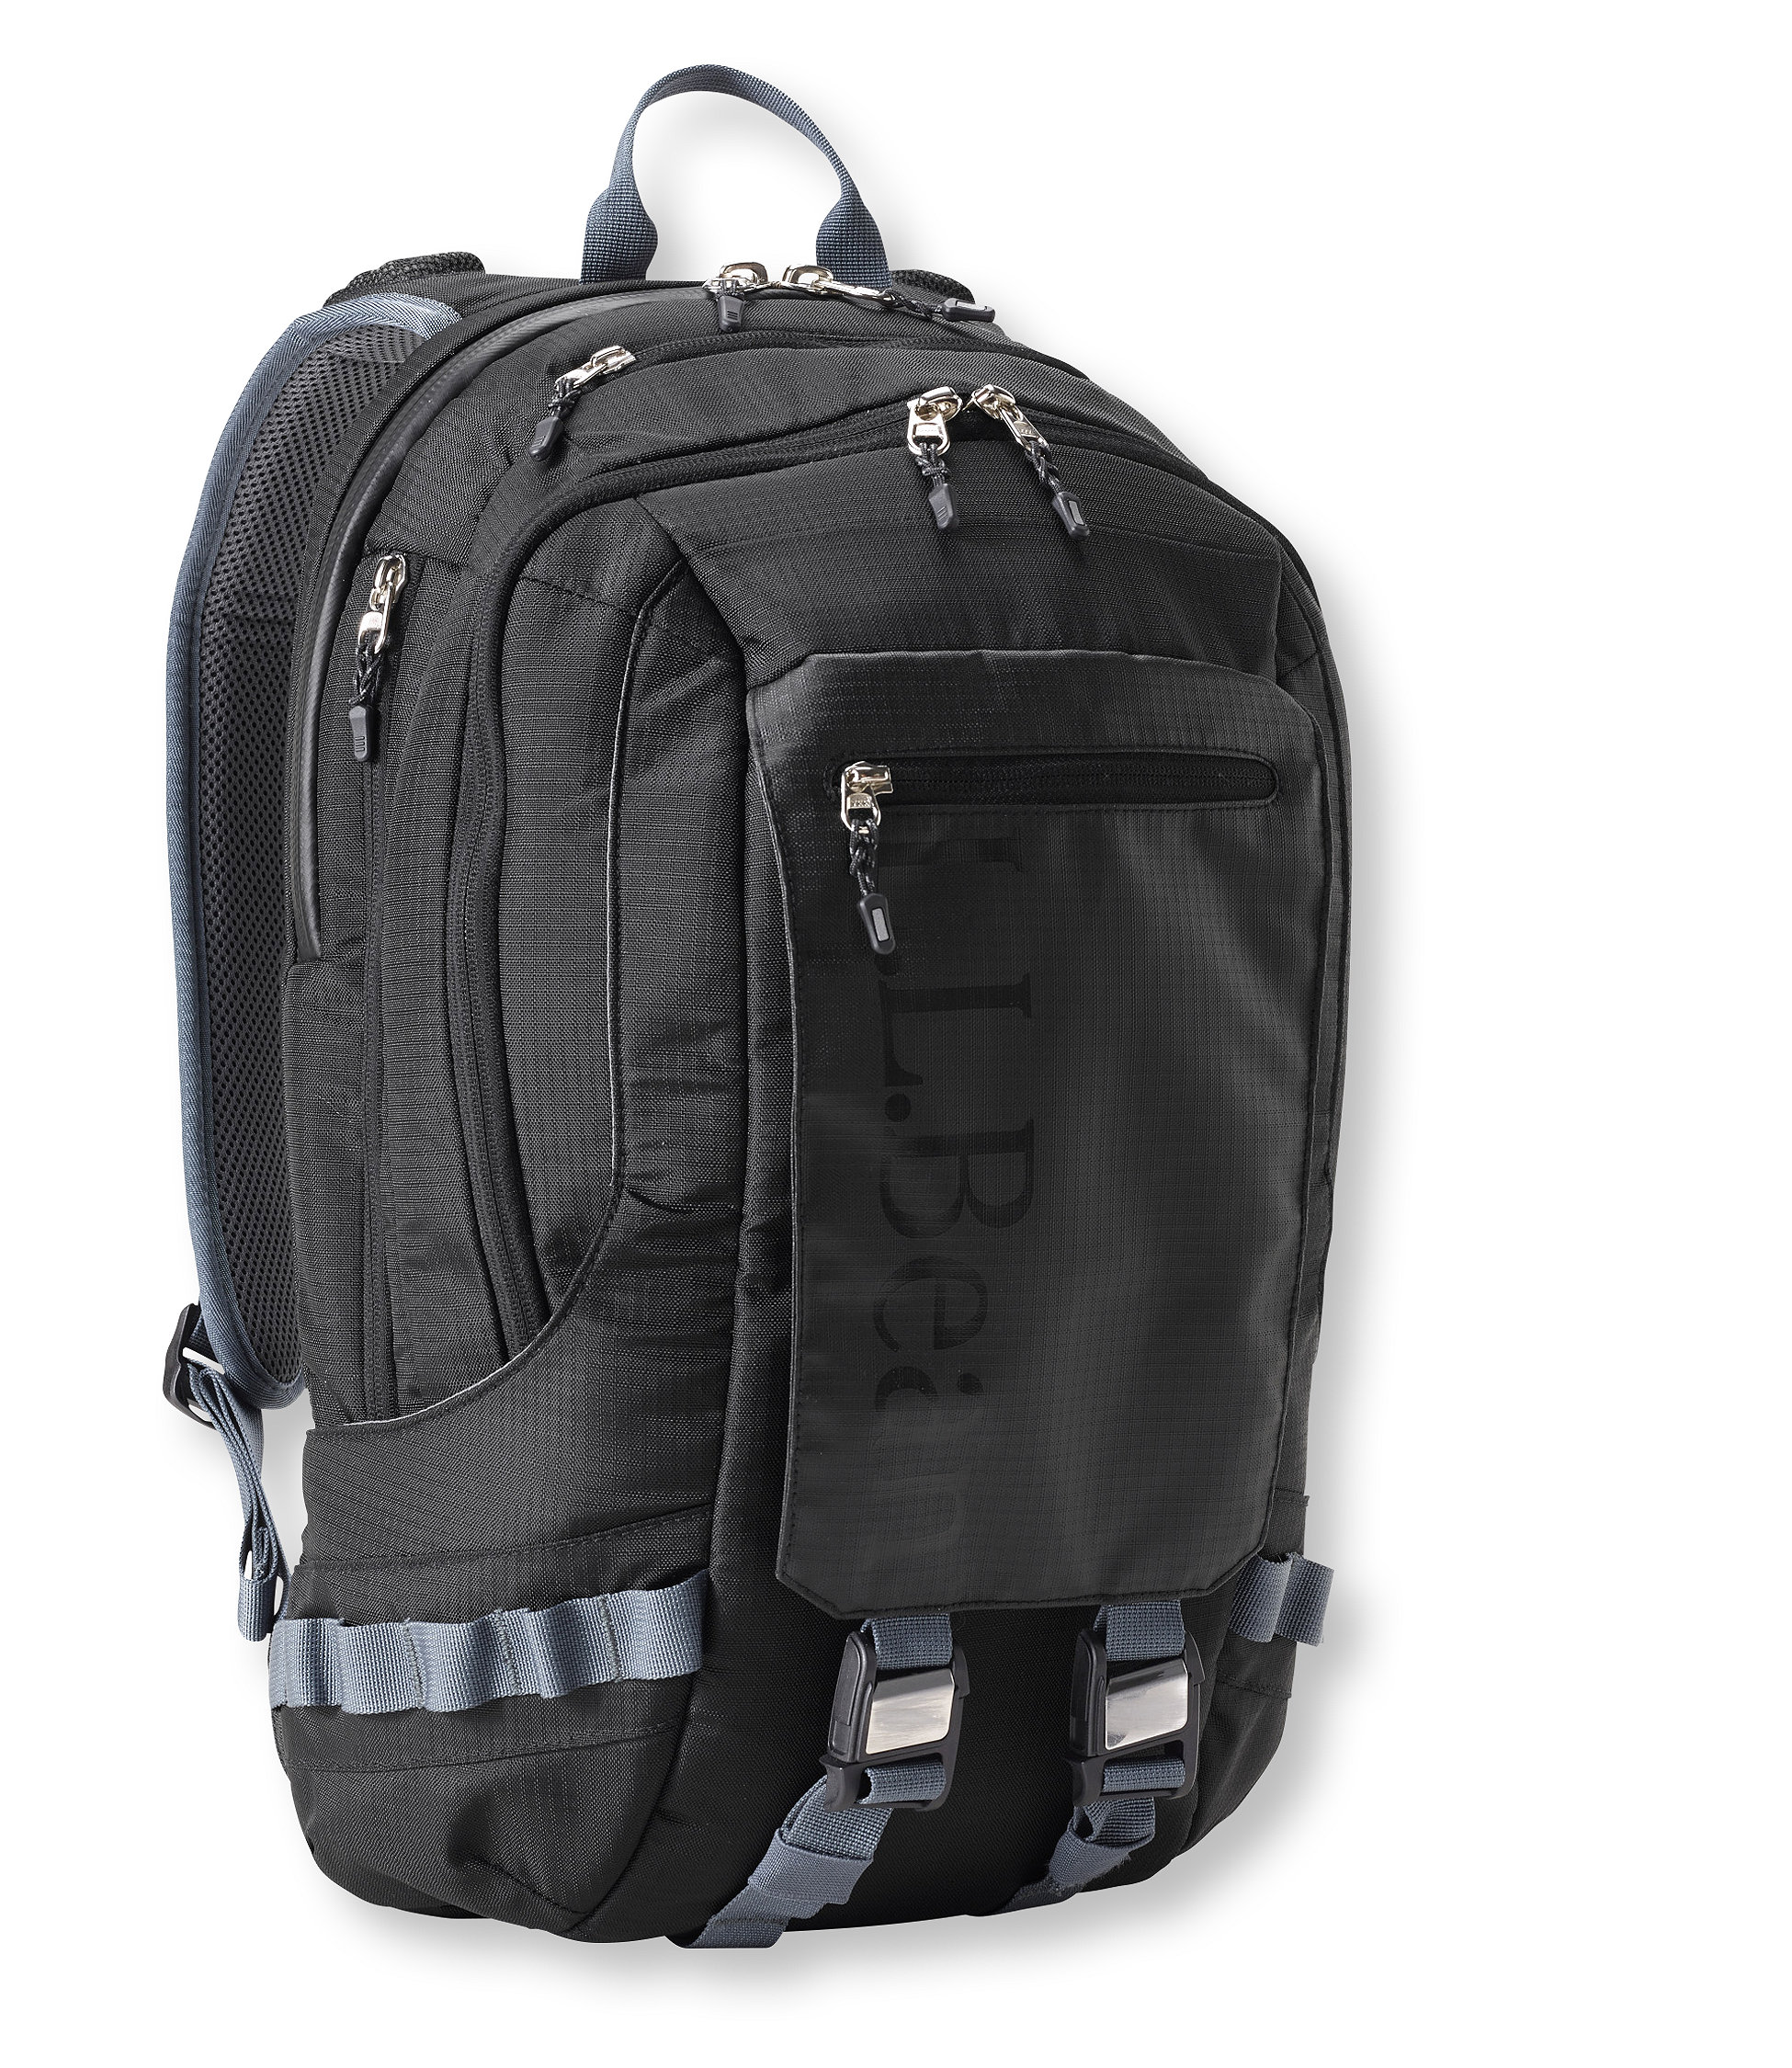 L.L.Bean Wirefly Backpack